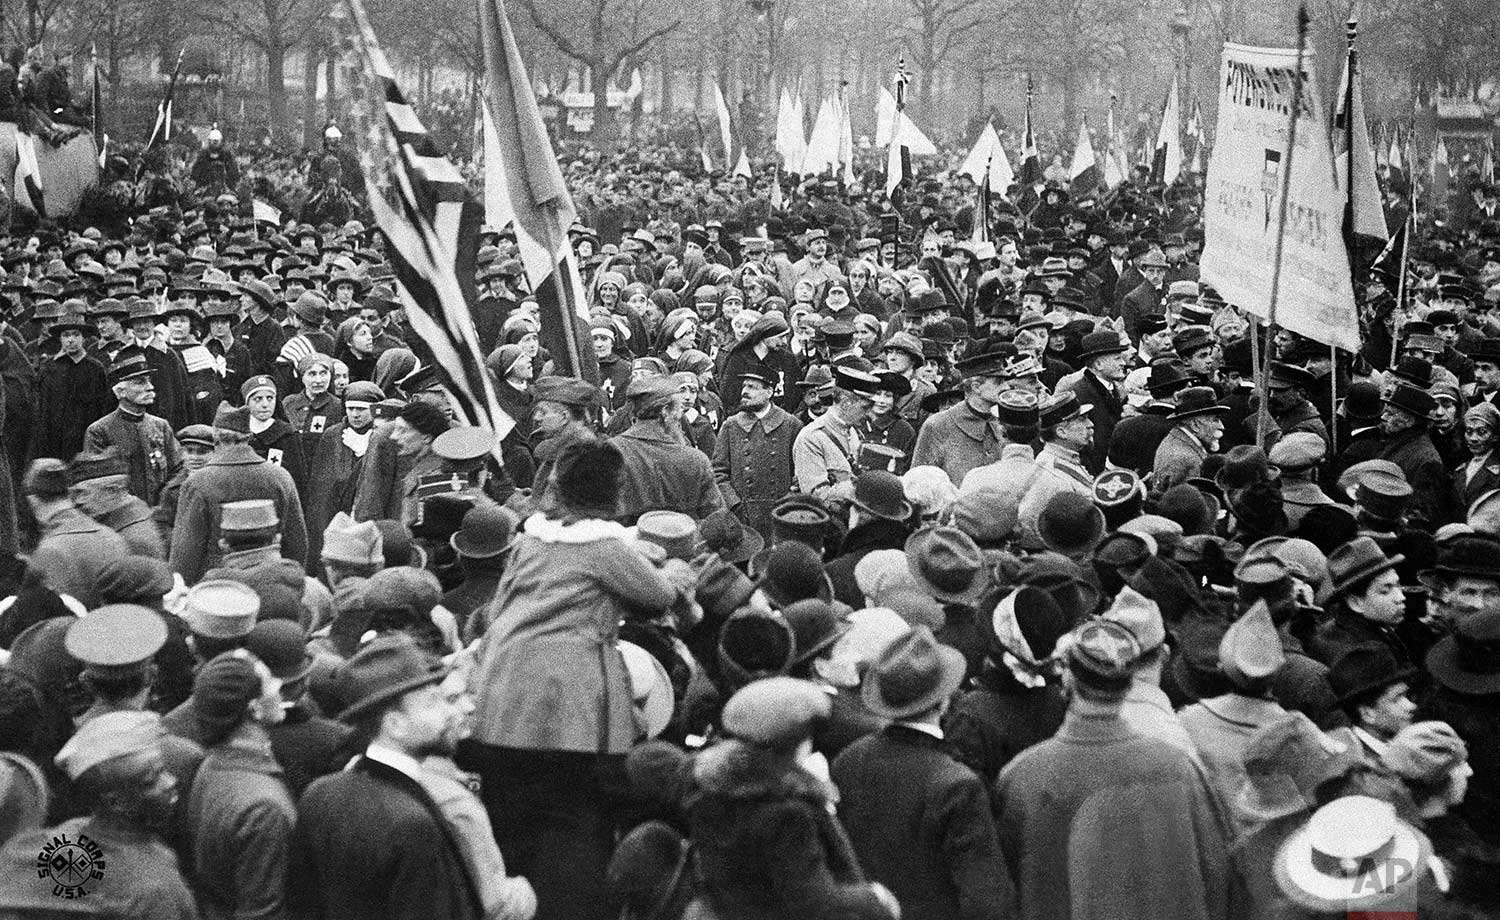 In this Nov. 11, 1918 photo, people in the streets of Paris, France, celebrate the signing of the Armistice that ended the fighting of World War One. (AP Photo)